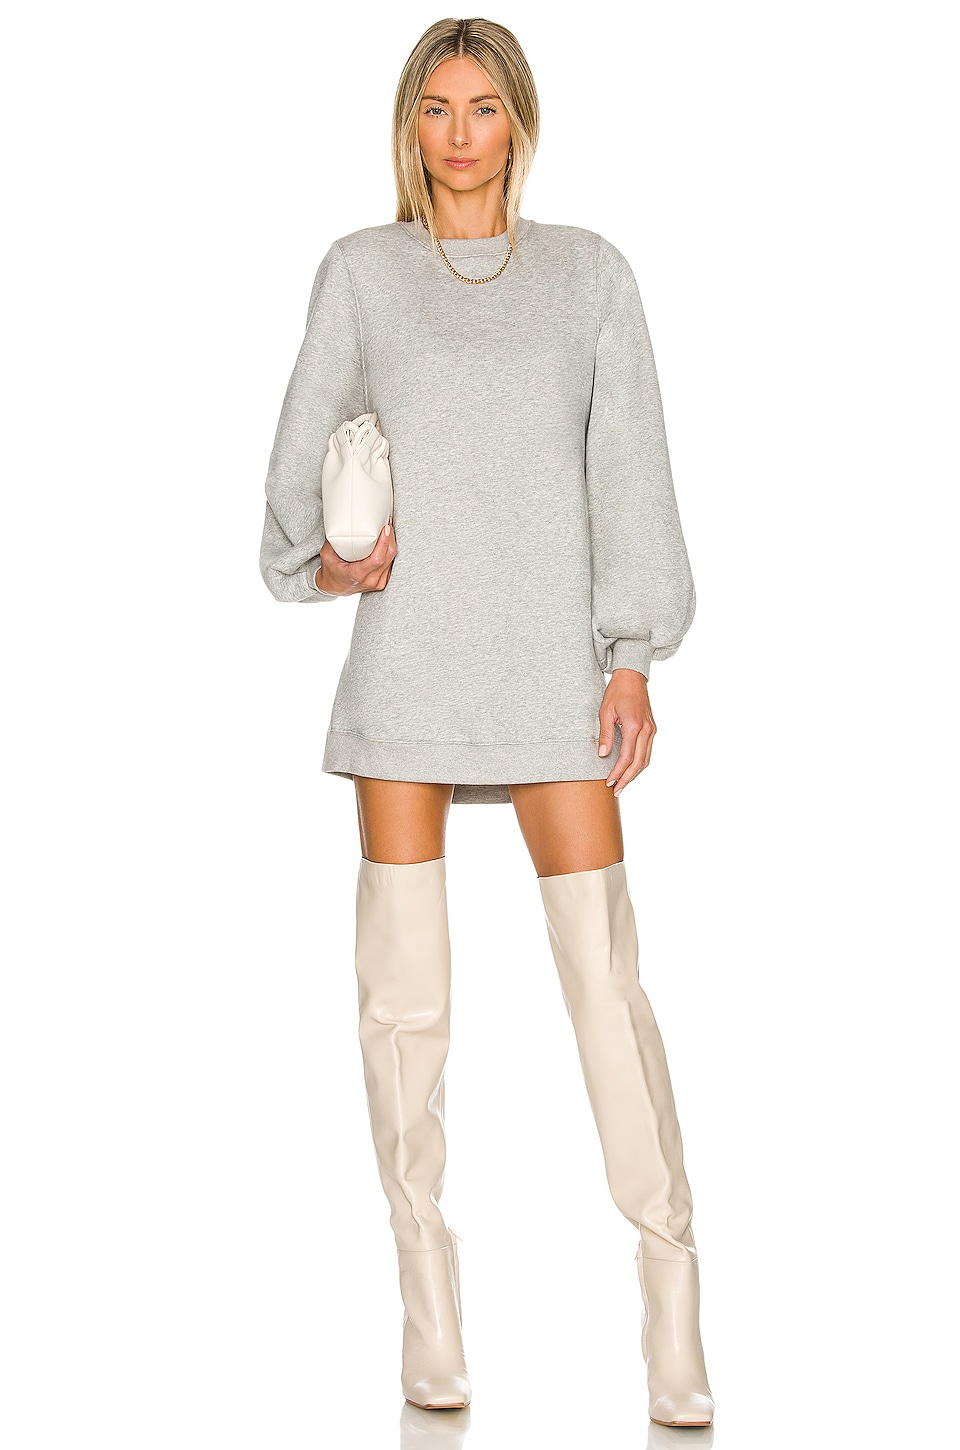 Lovers + Friends Jessa Sweatshirt Dress in Charcoal